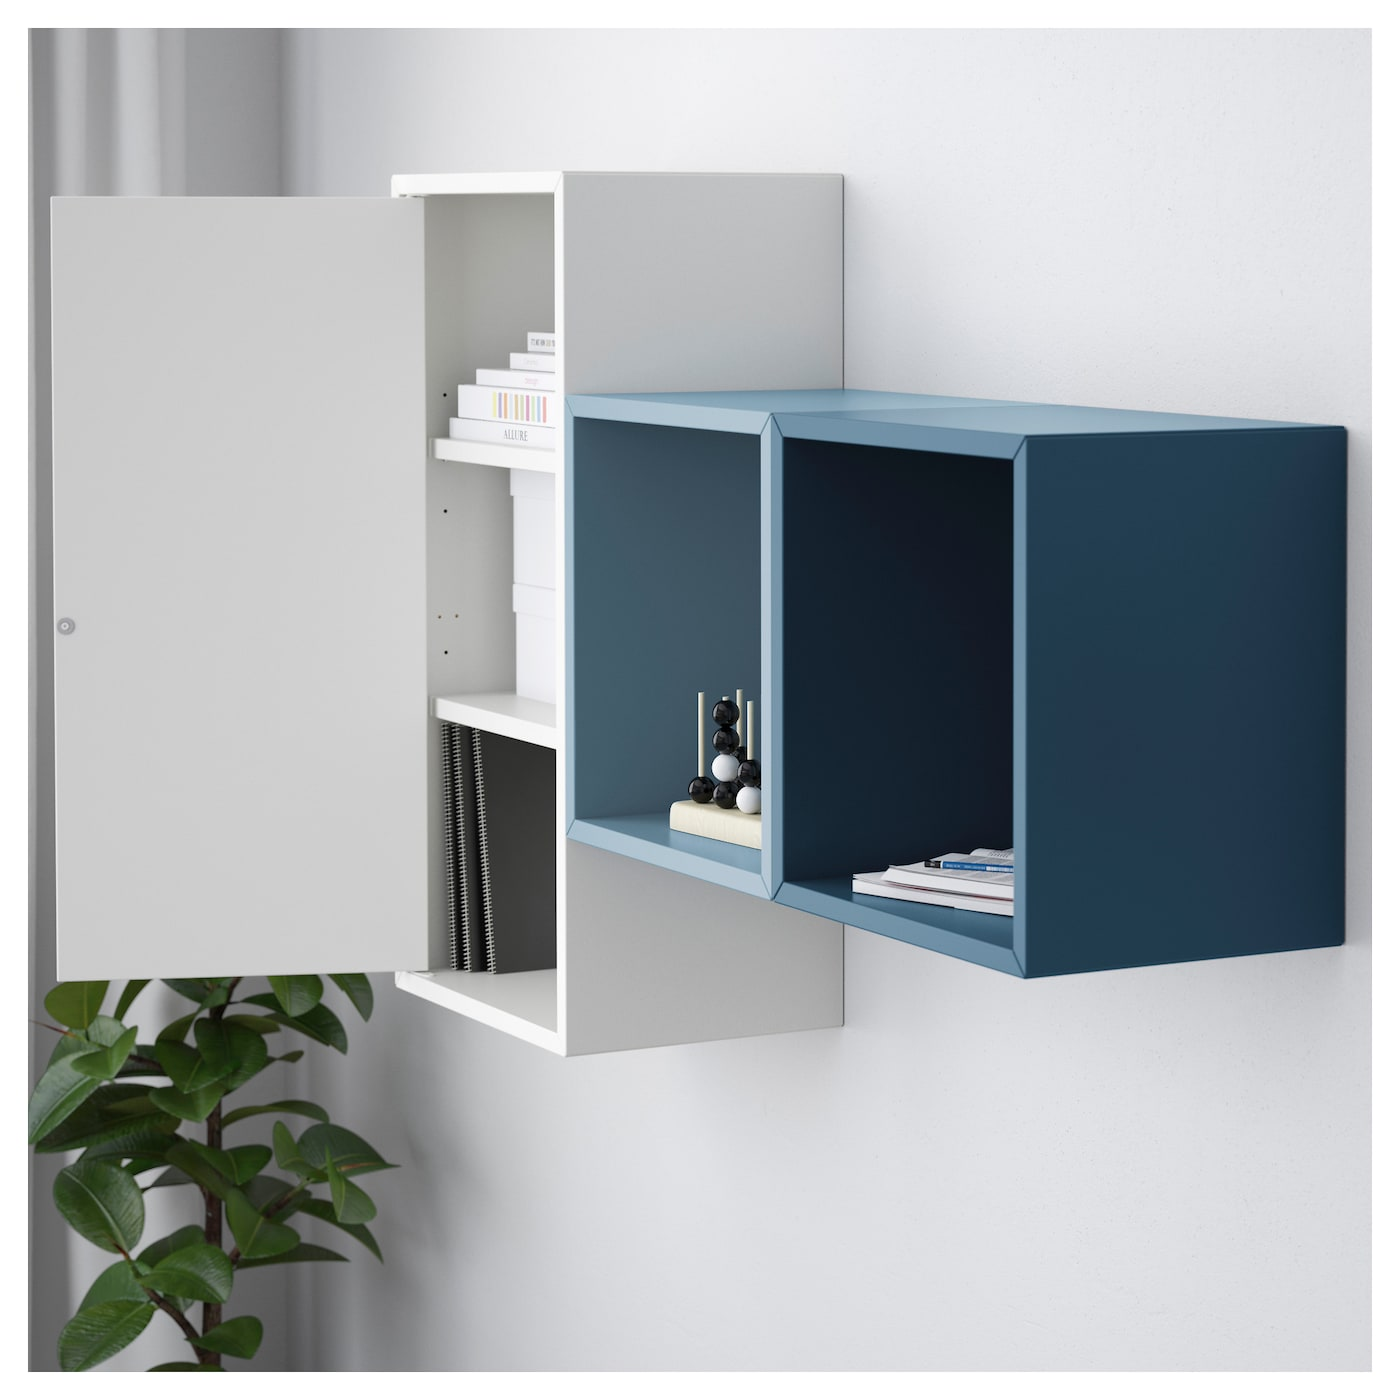 Eket Wall Mounted Cabinet Combination White Light Blue